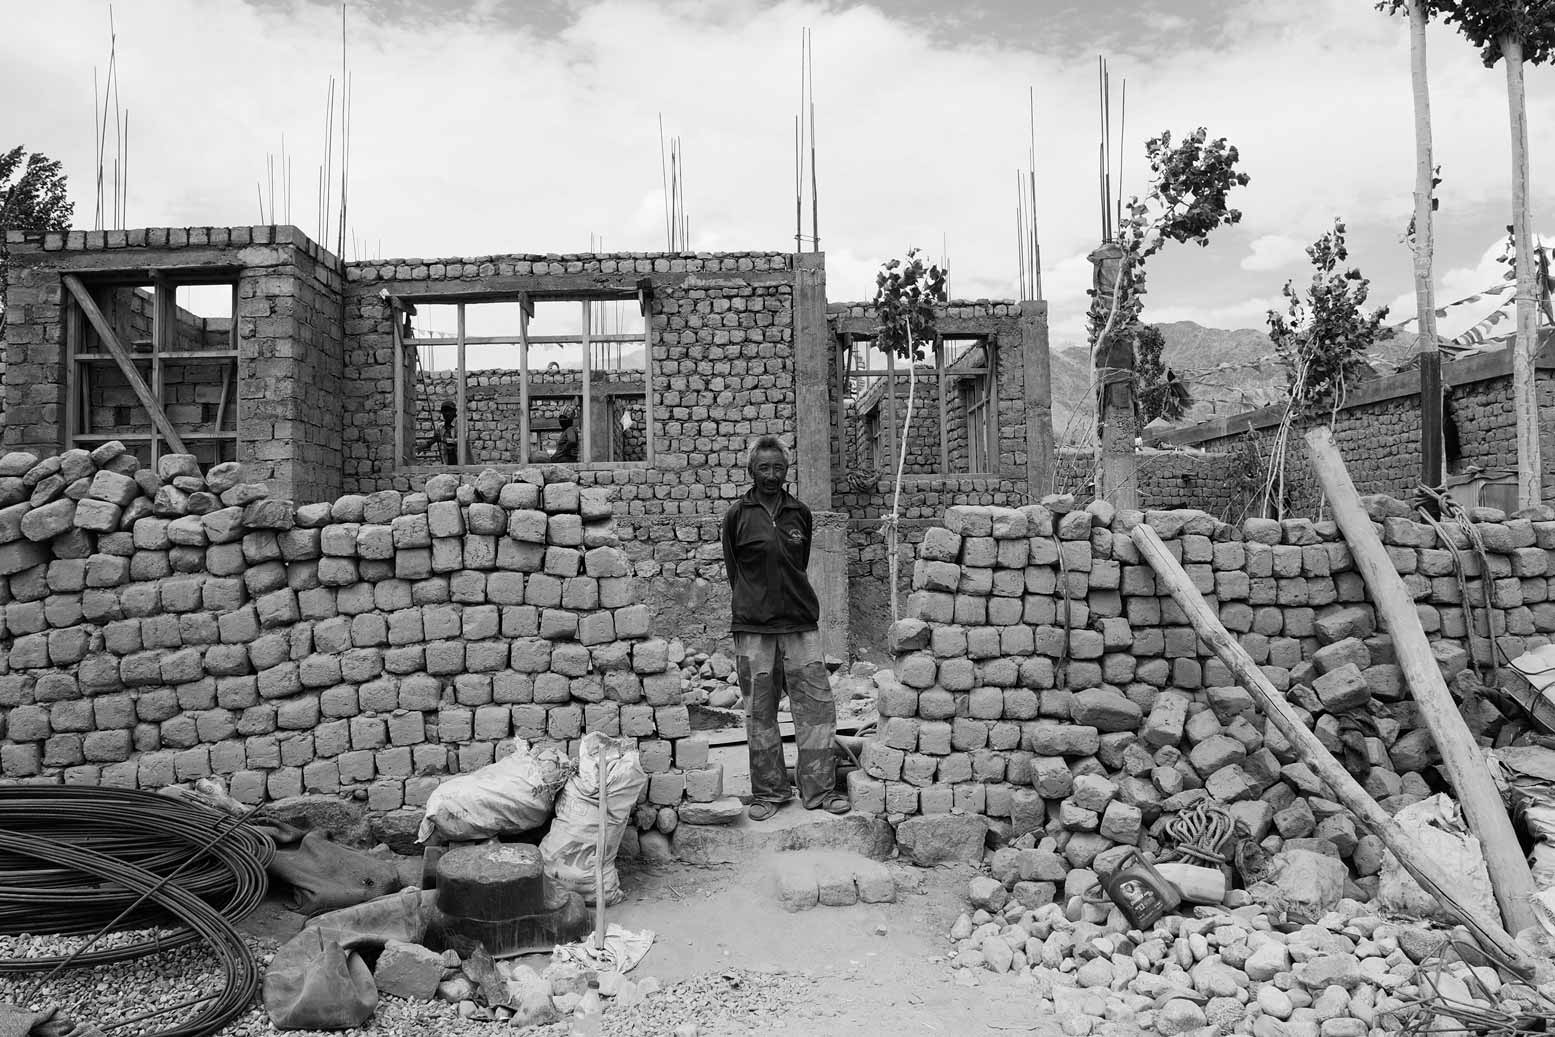 Settled nomad Jigmet in front of his house during construction.